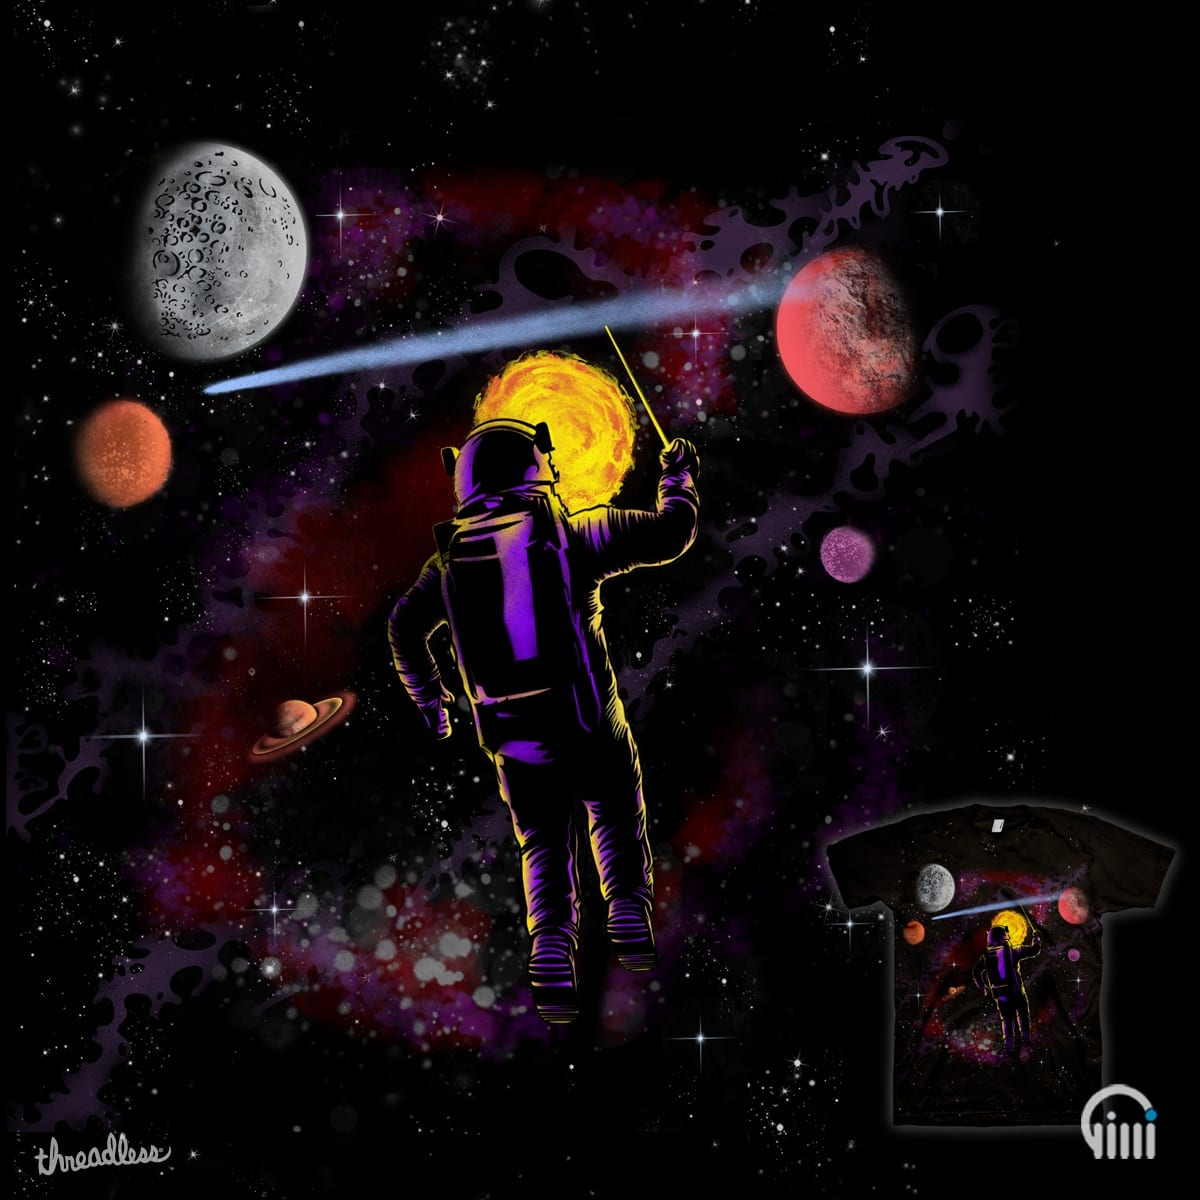 Symphony of the Planets by opippi on Threadless